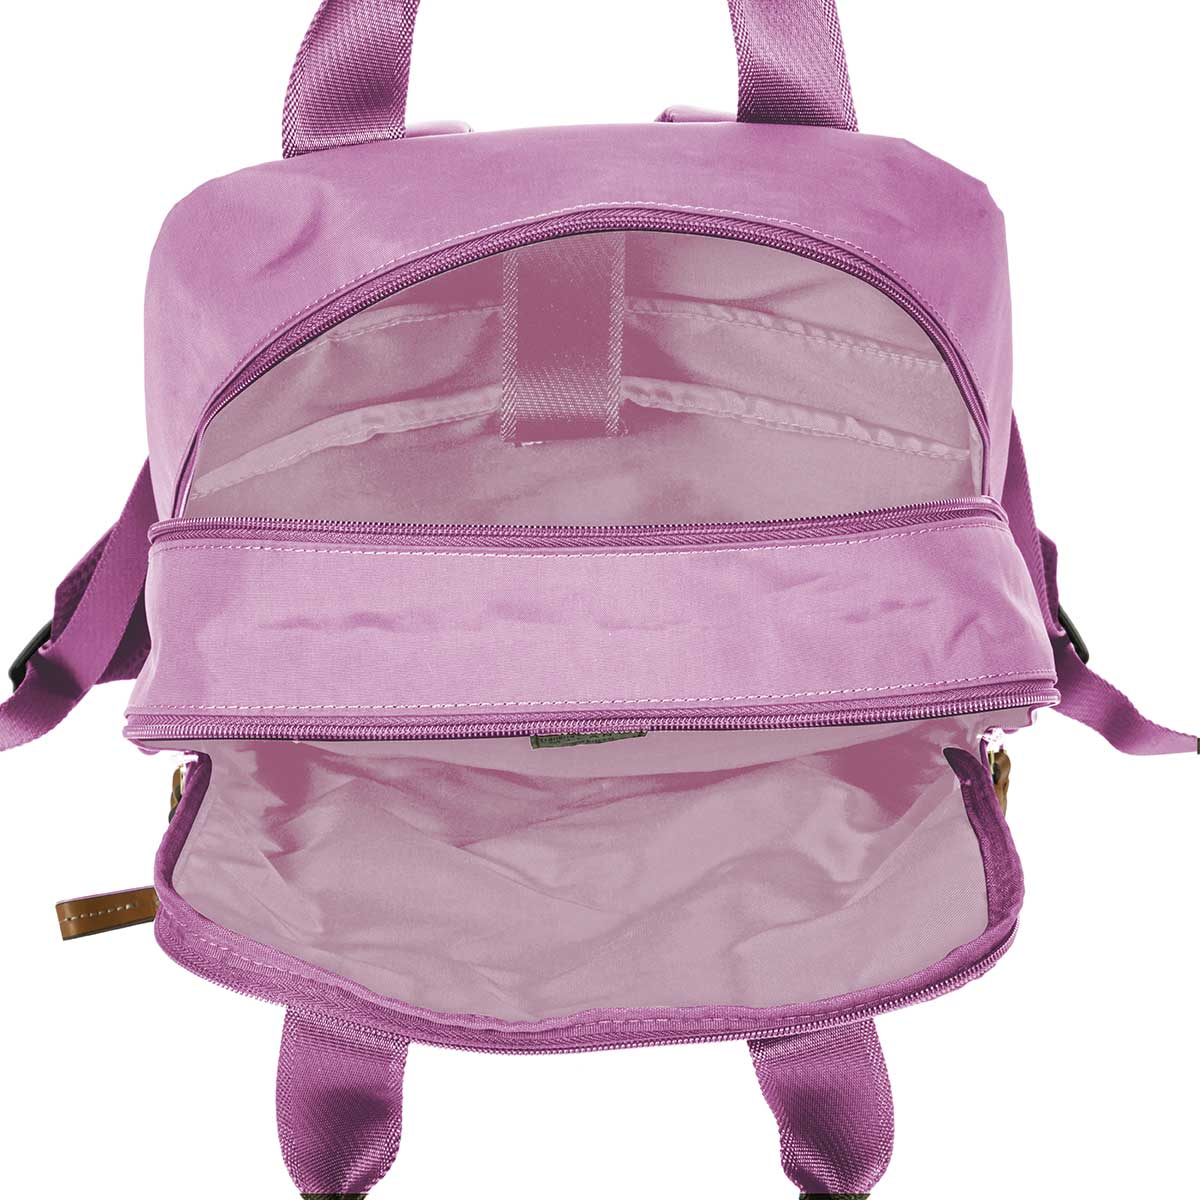 X-Bag Urban Backpack - Wisteria | Brics store luggage